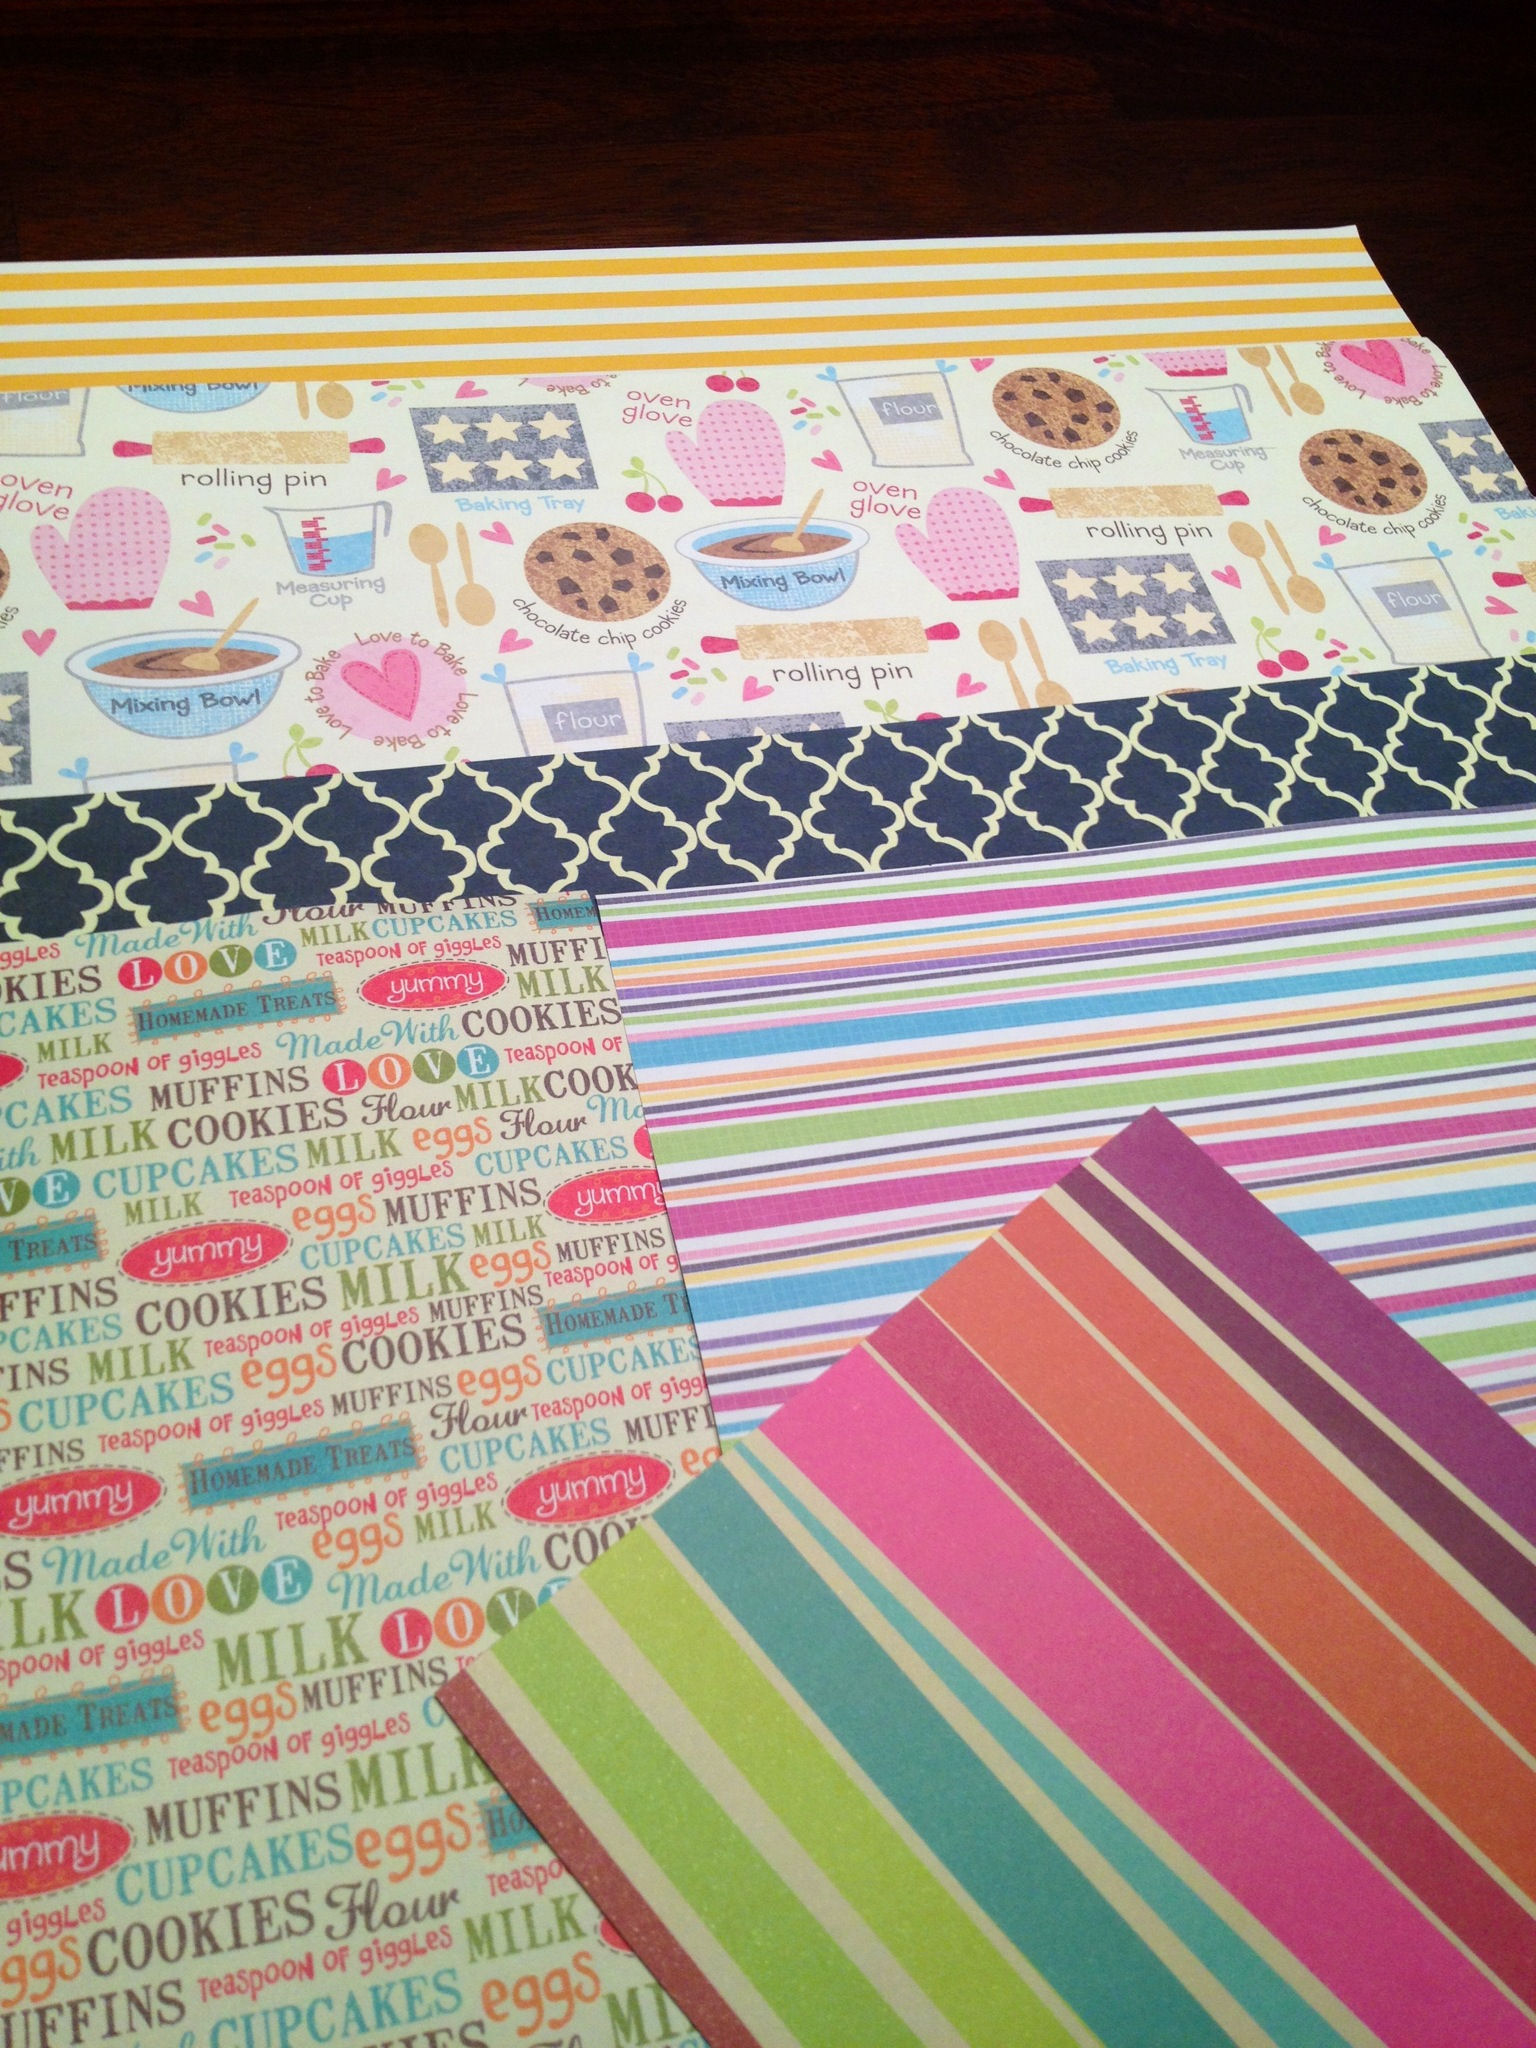 Scrapbook paper examples - Examples Of Scrapbook Paper For Your Recipe Box